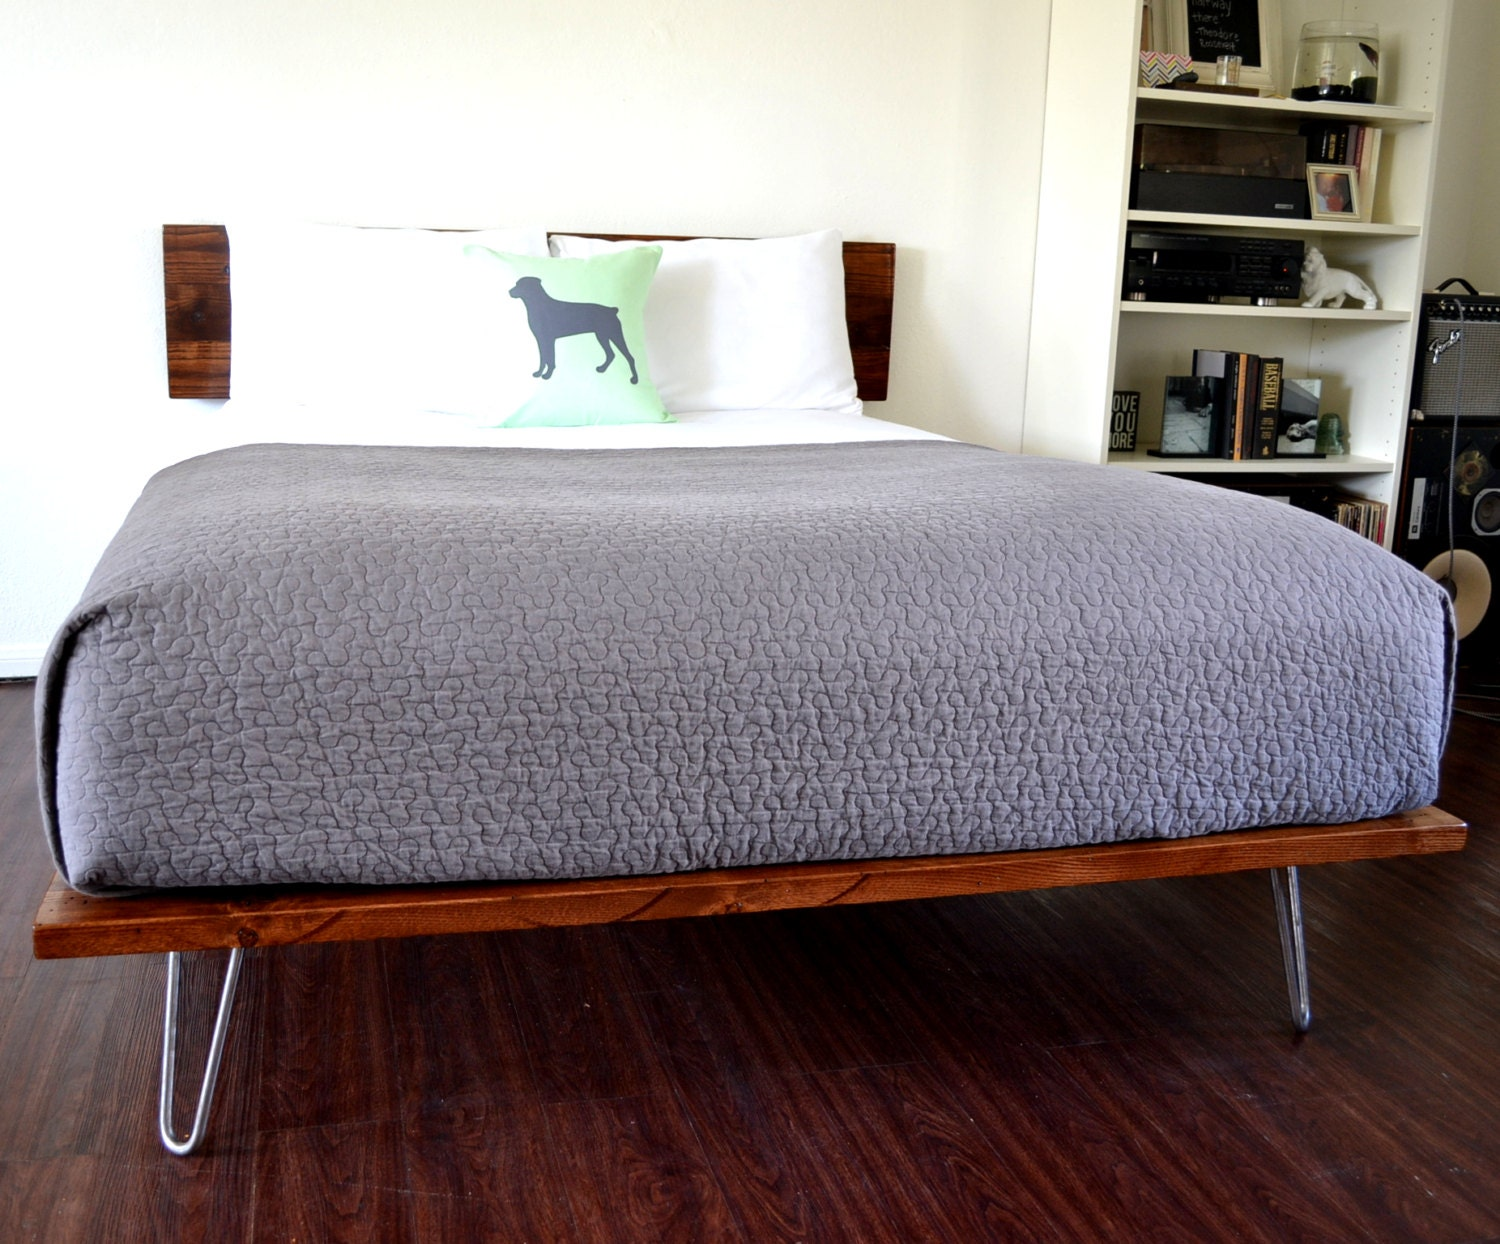 Mattress Box Spring Combo Platform Bed And Headboard Queen Size On Hairpin Legs Minimal